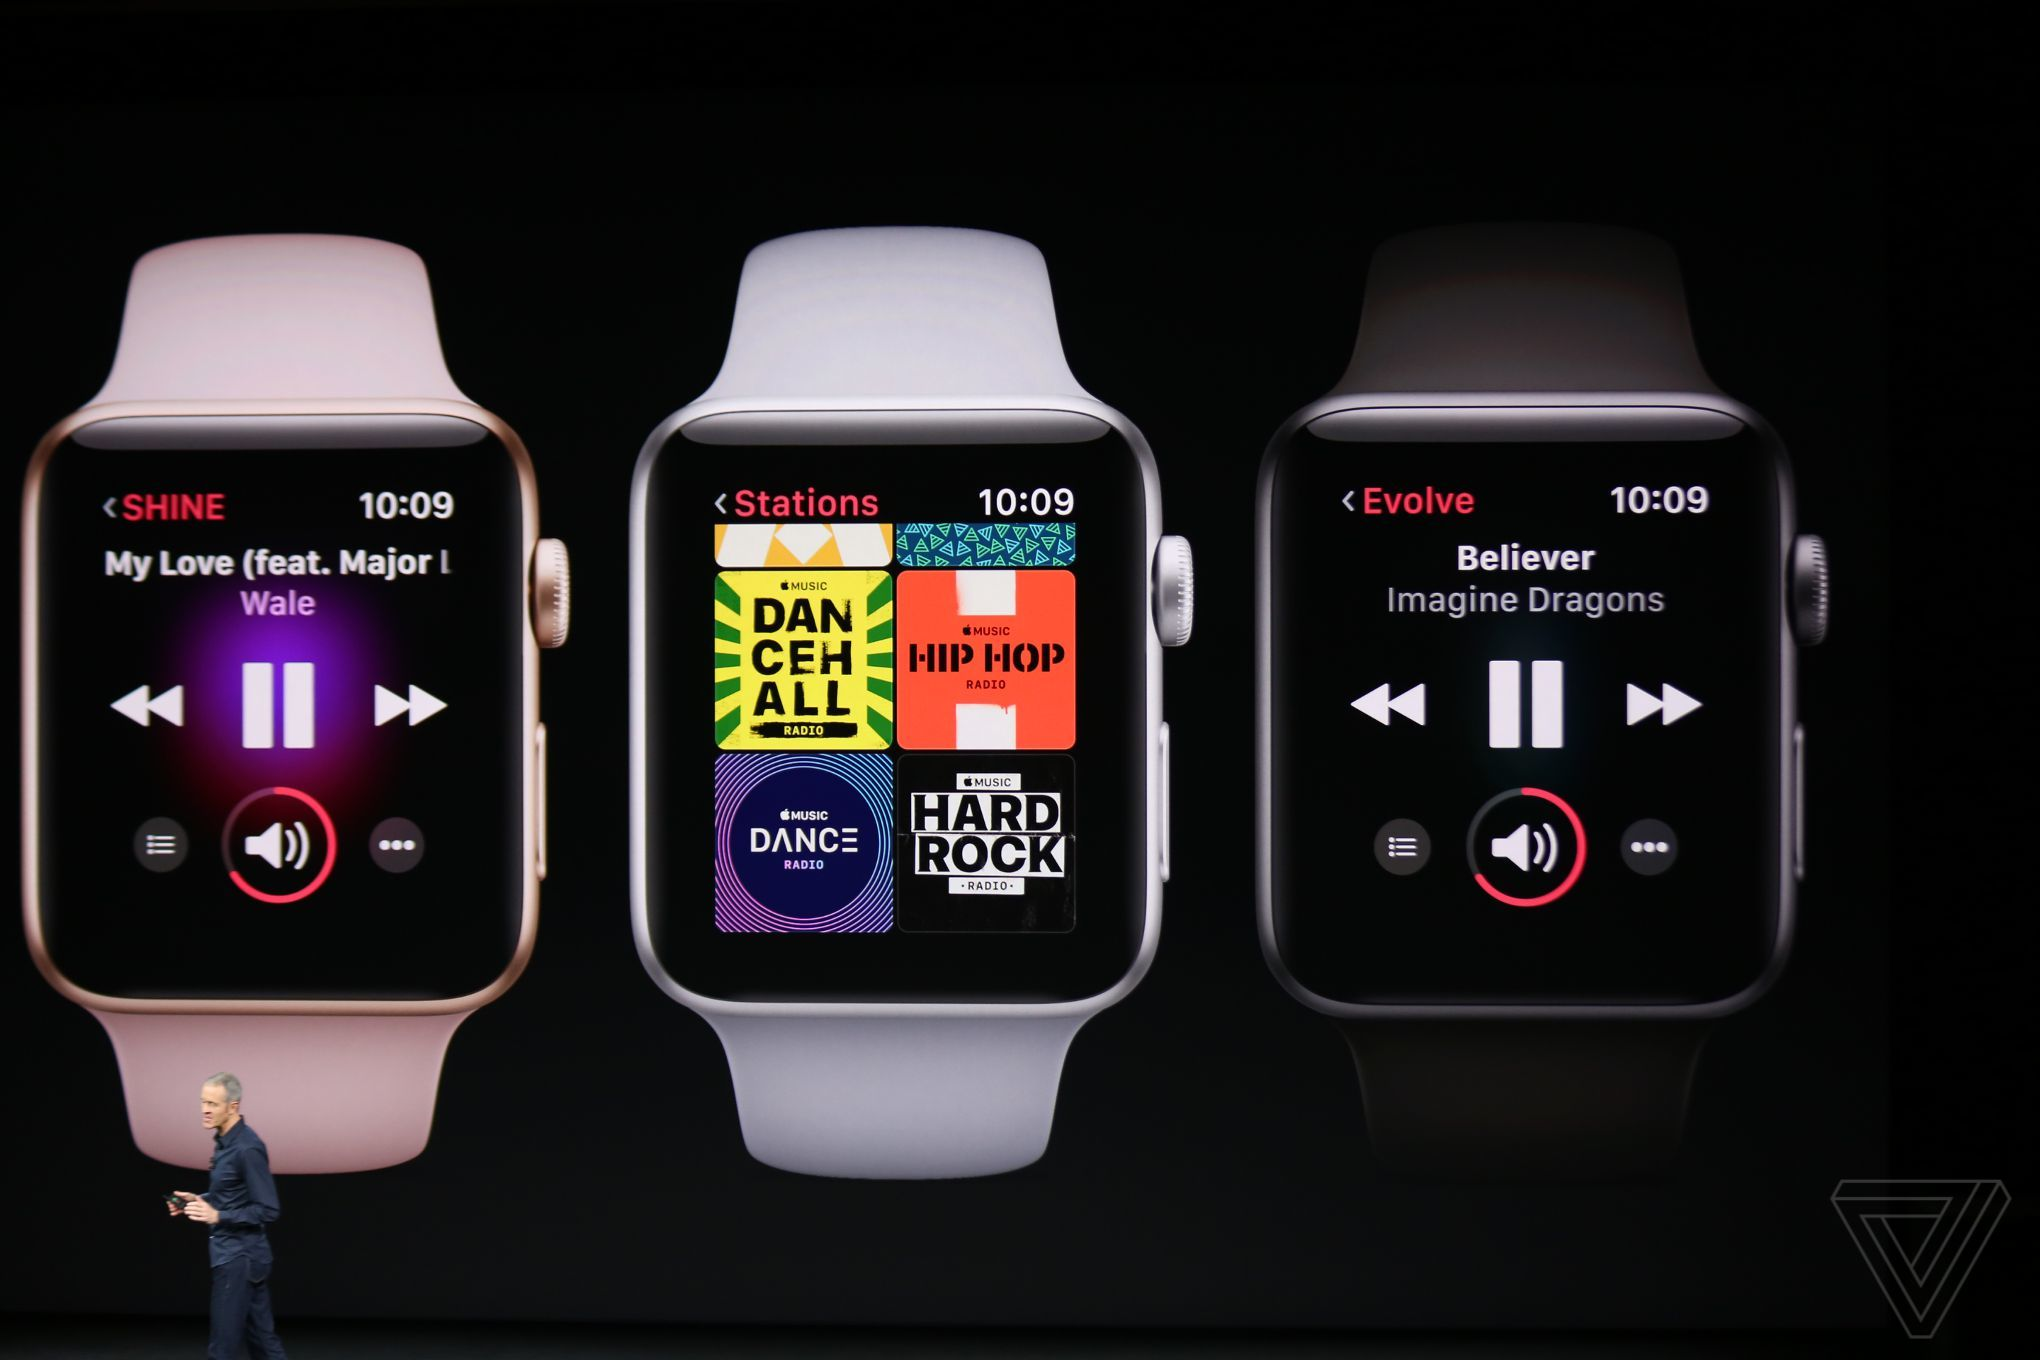 Apple Watch 4 New Apple Watch 3 Series